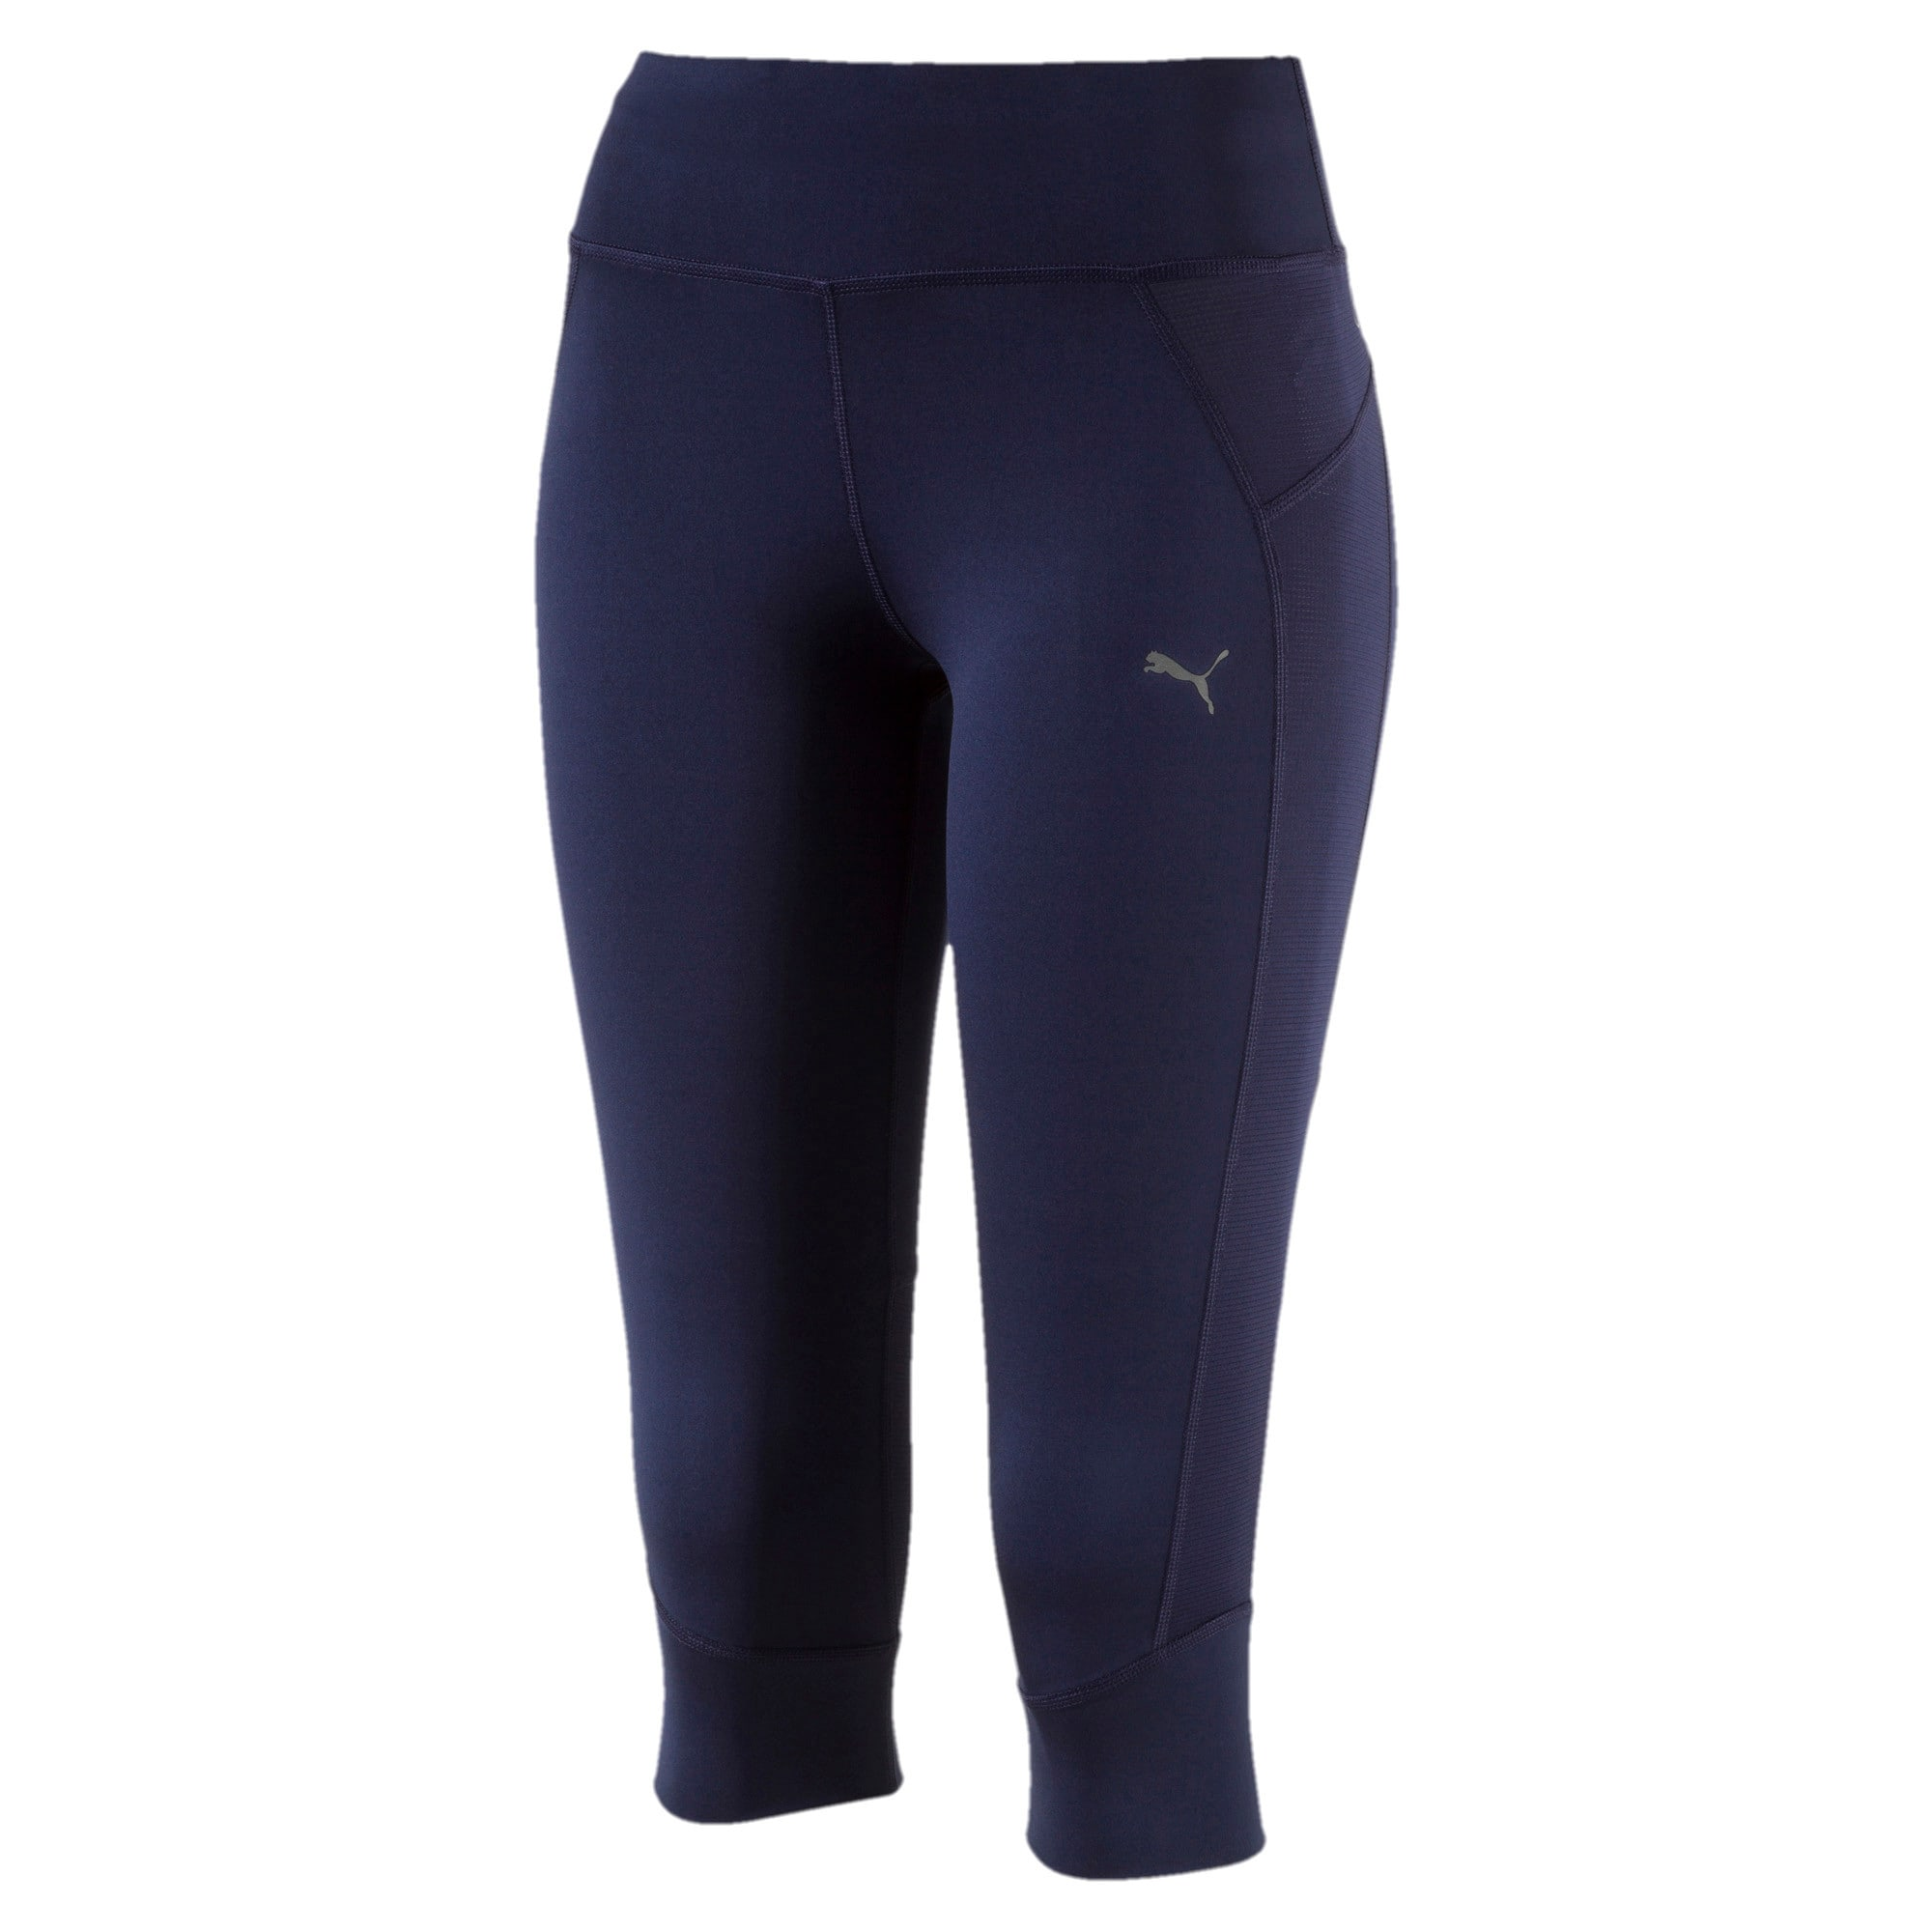 Thumbnail 1 of Running Women's PWRCOOL Speed 3/4 Tights, Peacoat, medium-IND